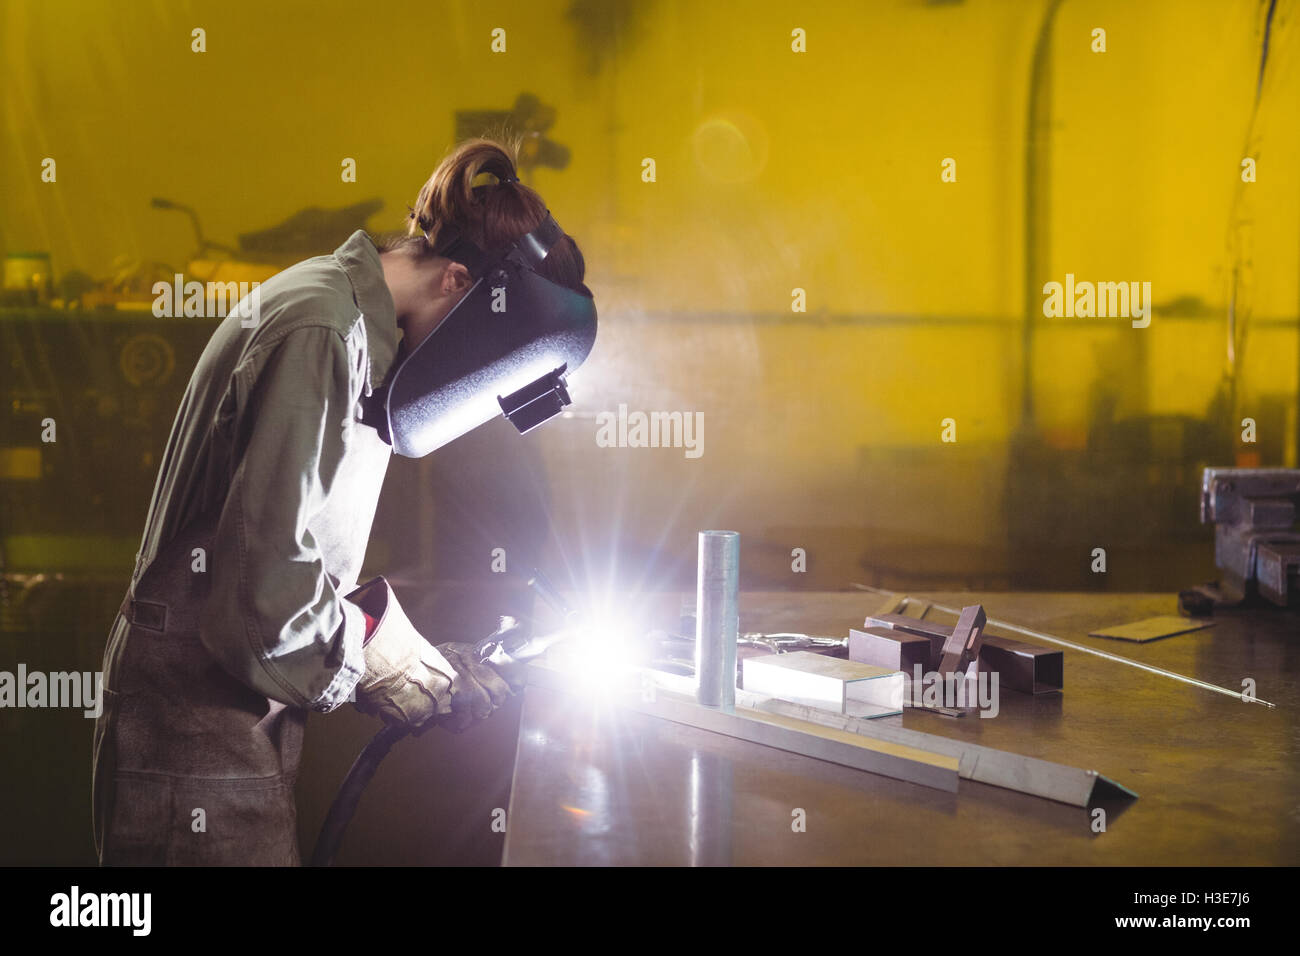 Female welder working on a piece of metal Stock Photo